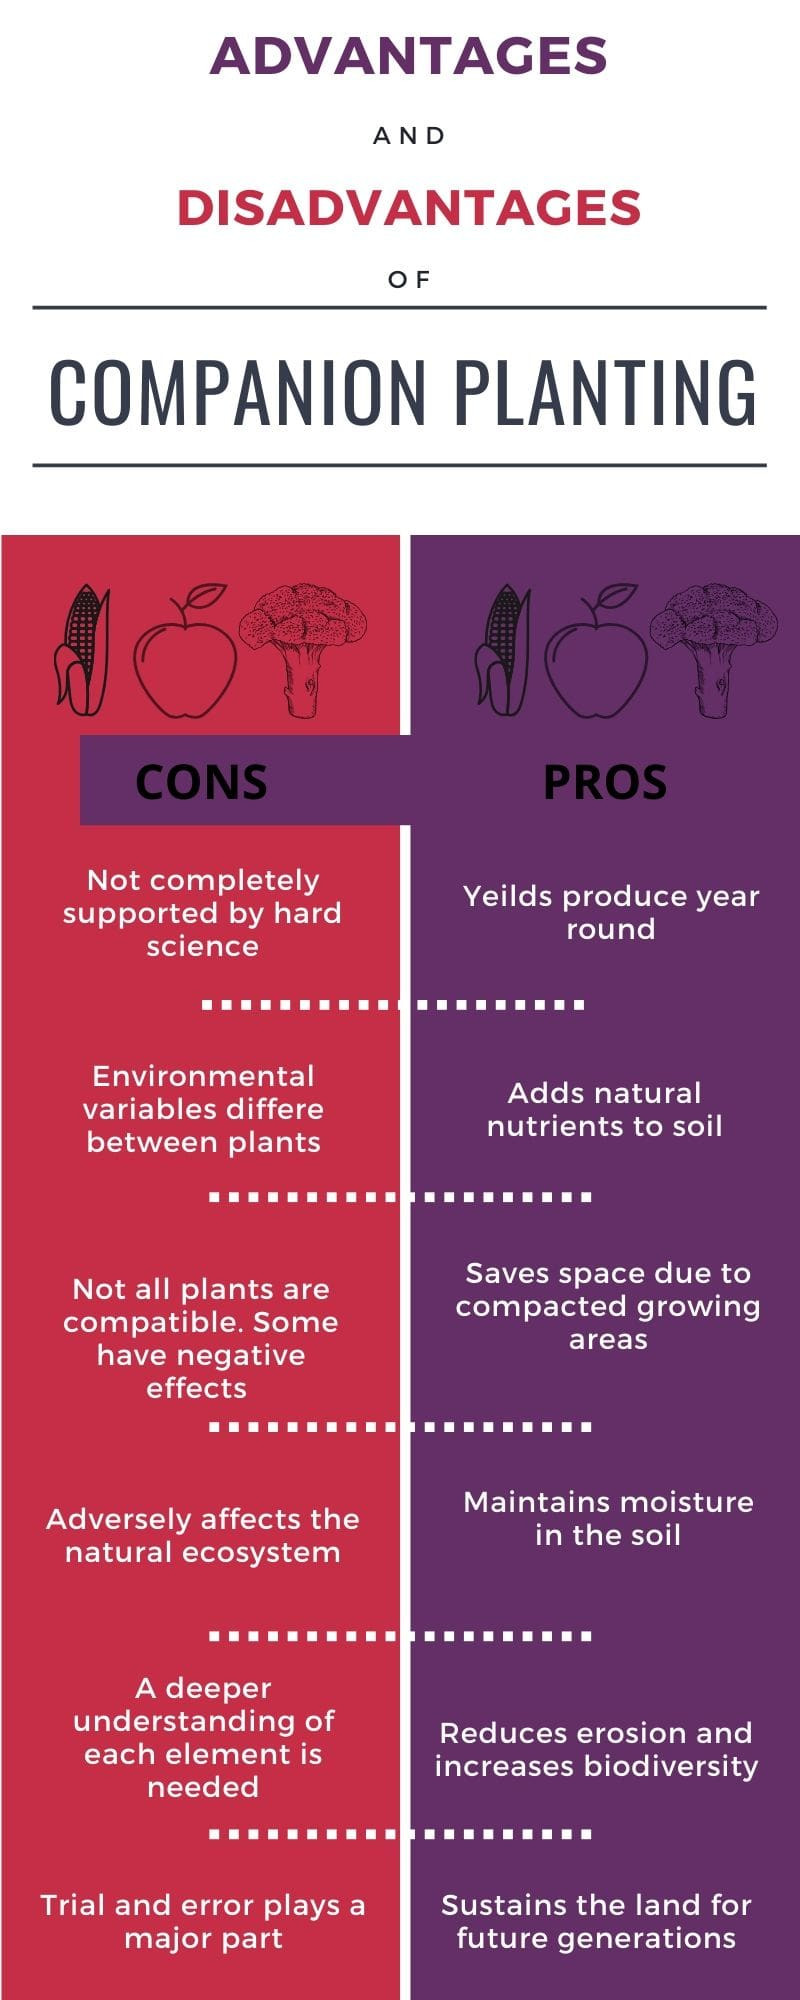 Pros and cons of companion planting infographic